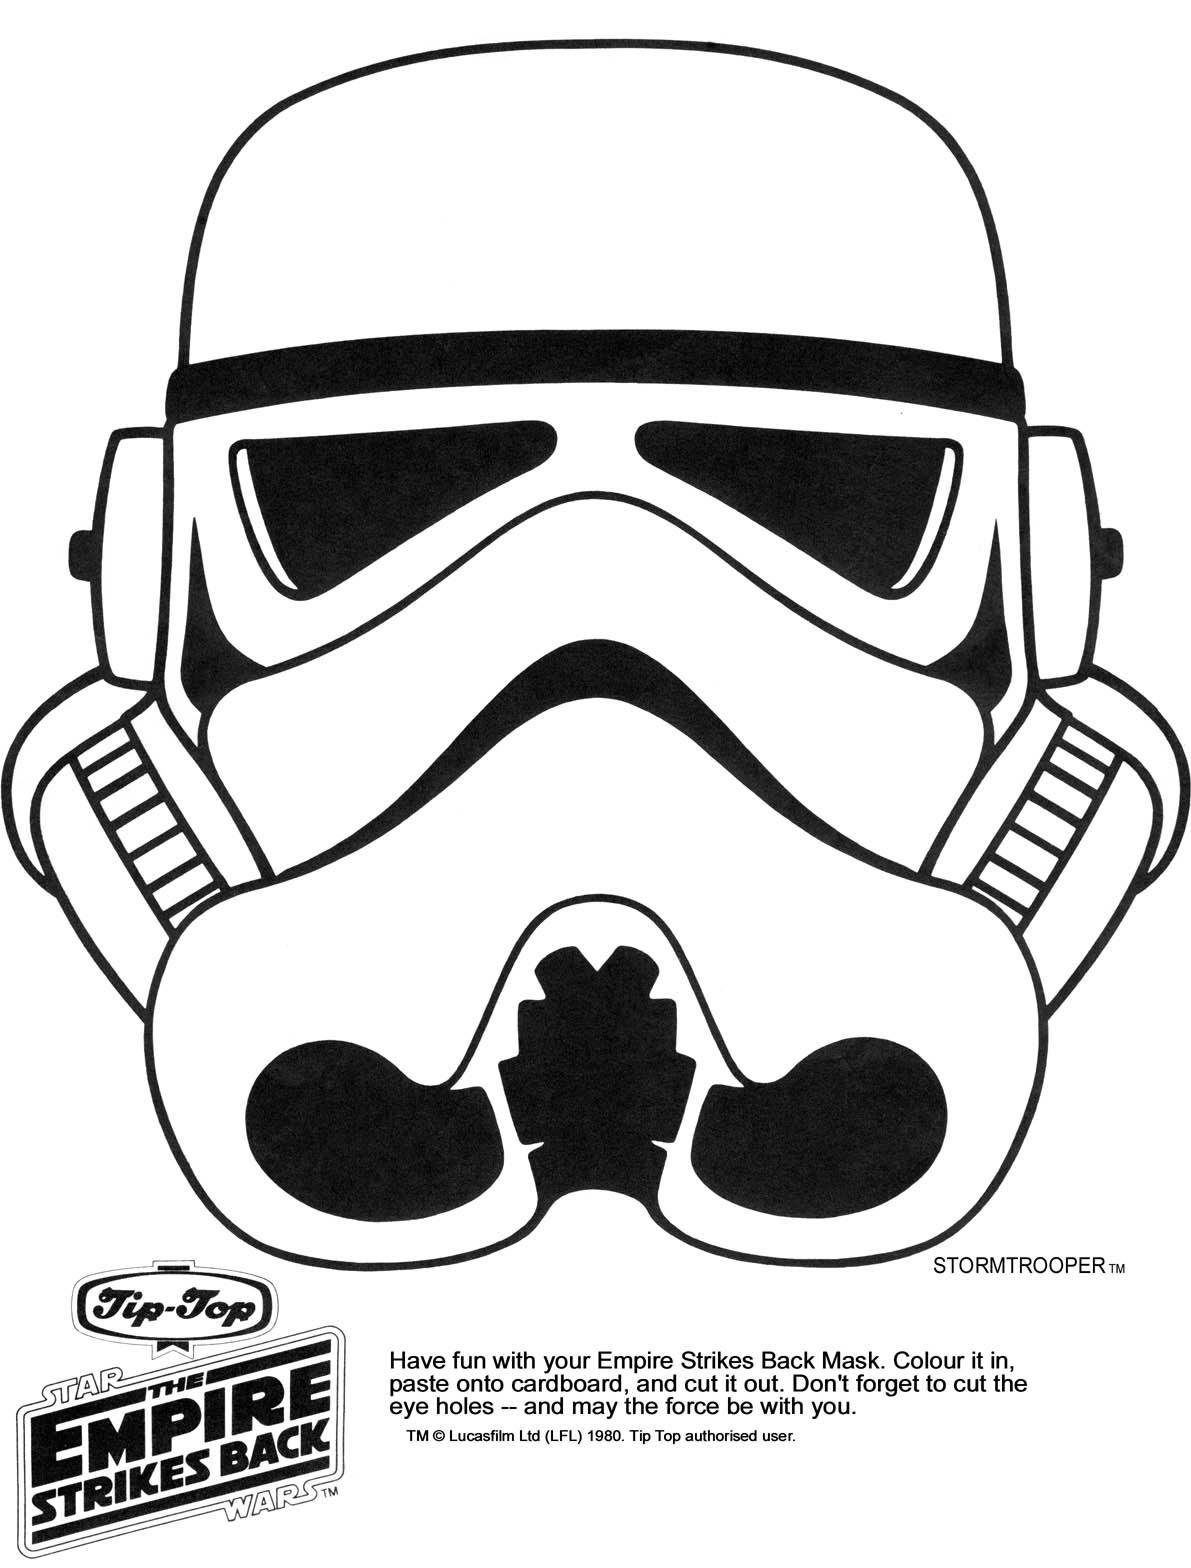 stormtrooper head drawing at getdrawings com free for personal use